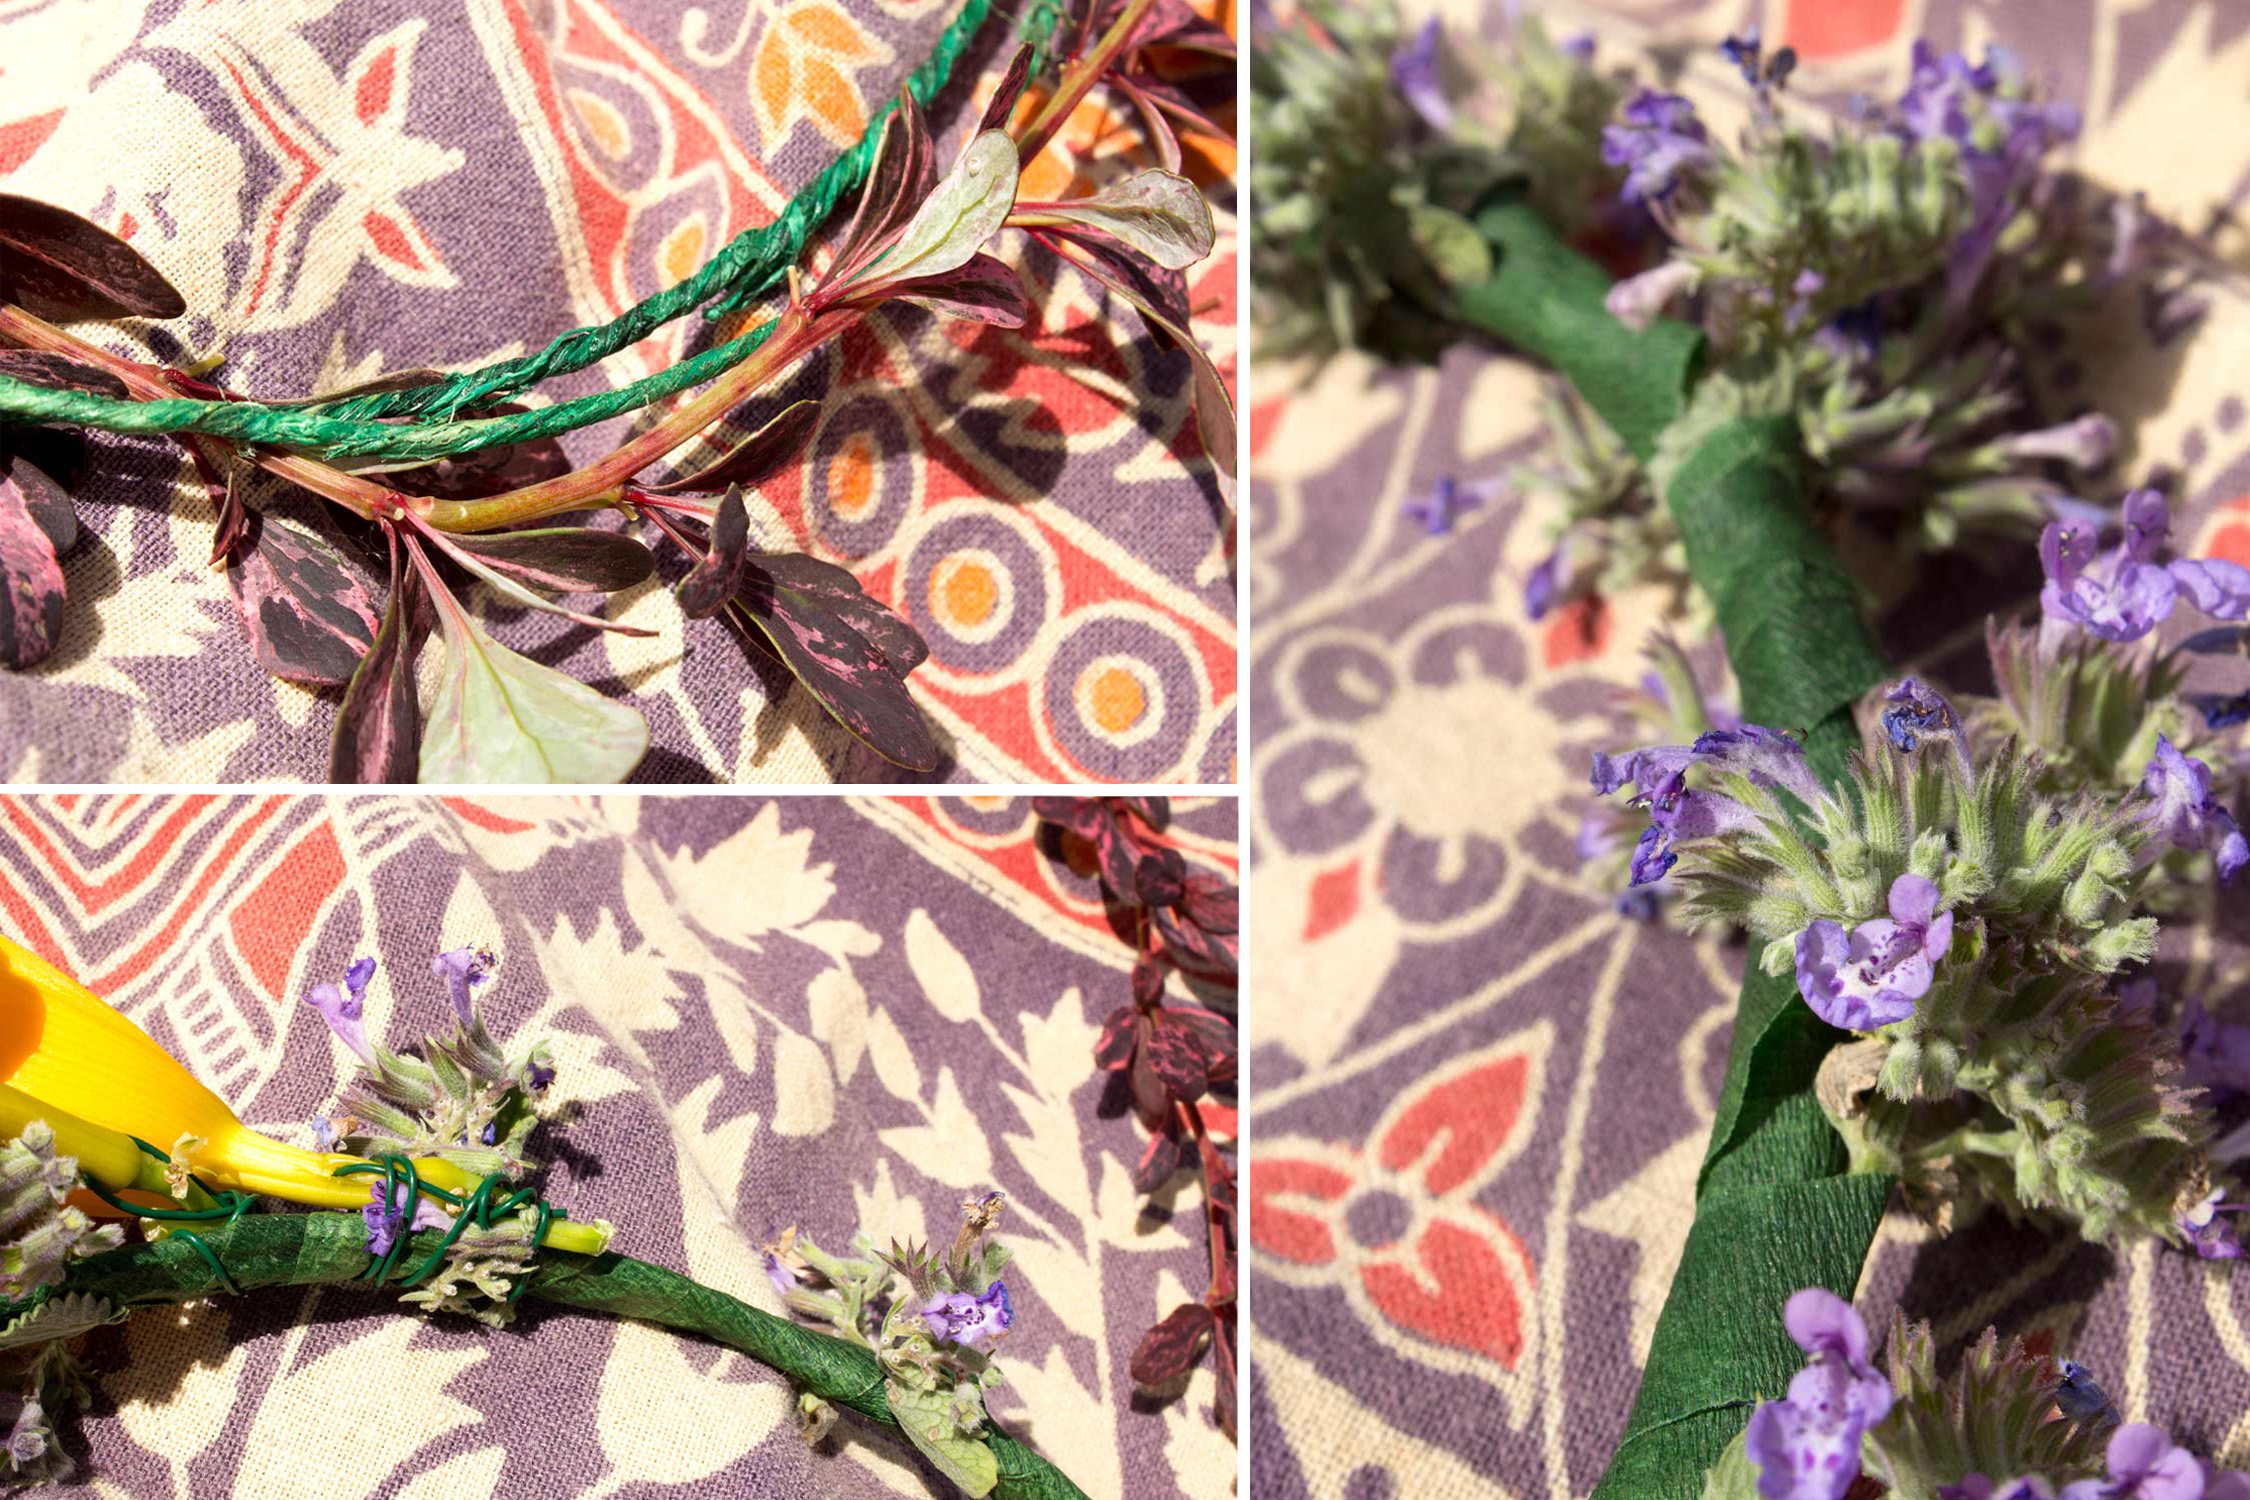 flower crown 1 - Hippie Flower Crown- DIY Flower Crown Headband